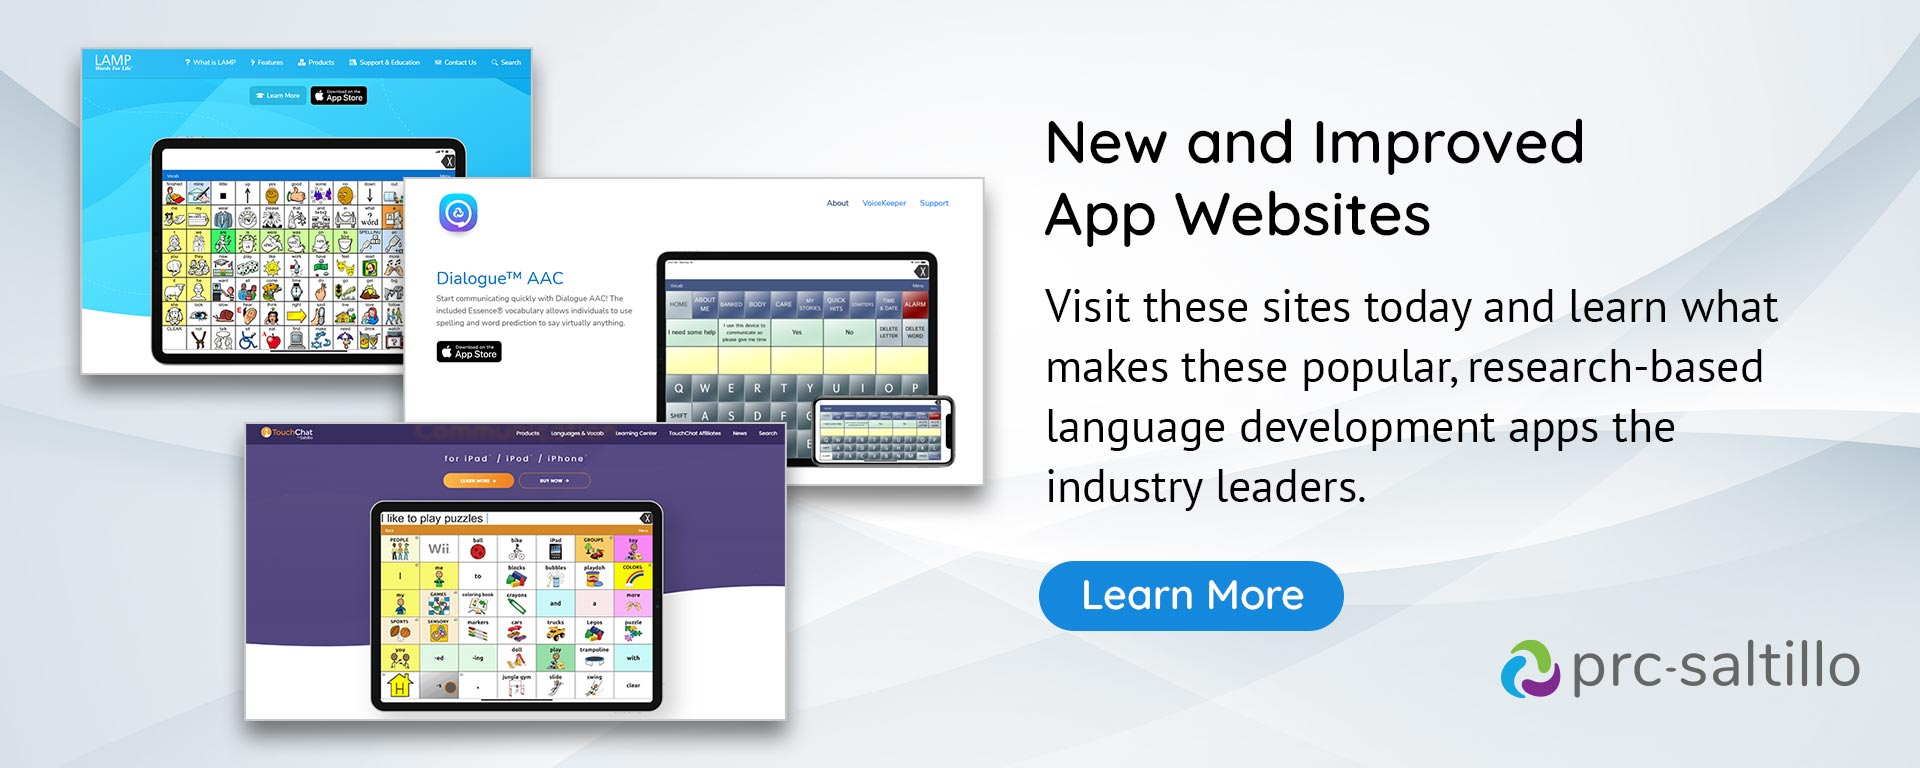 New and improved app websites